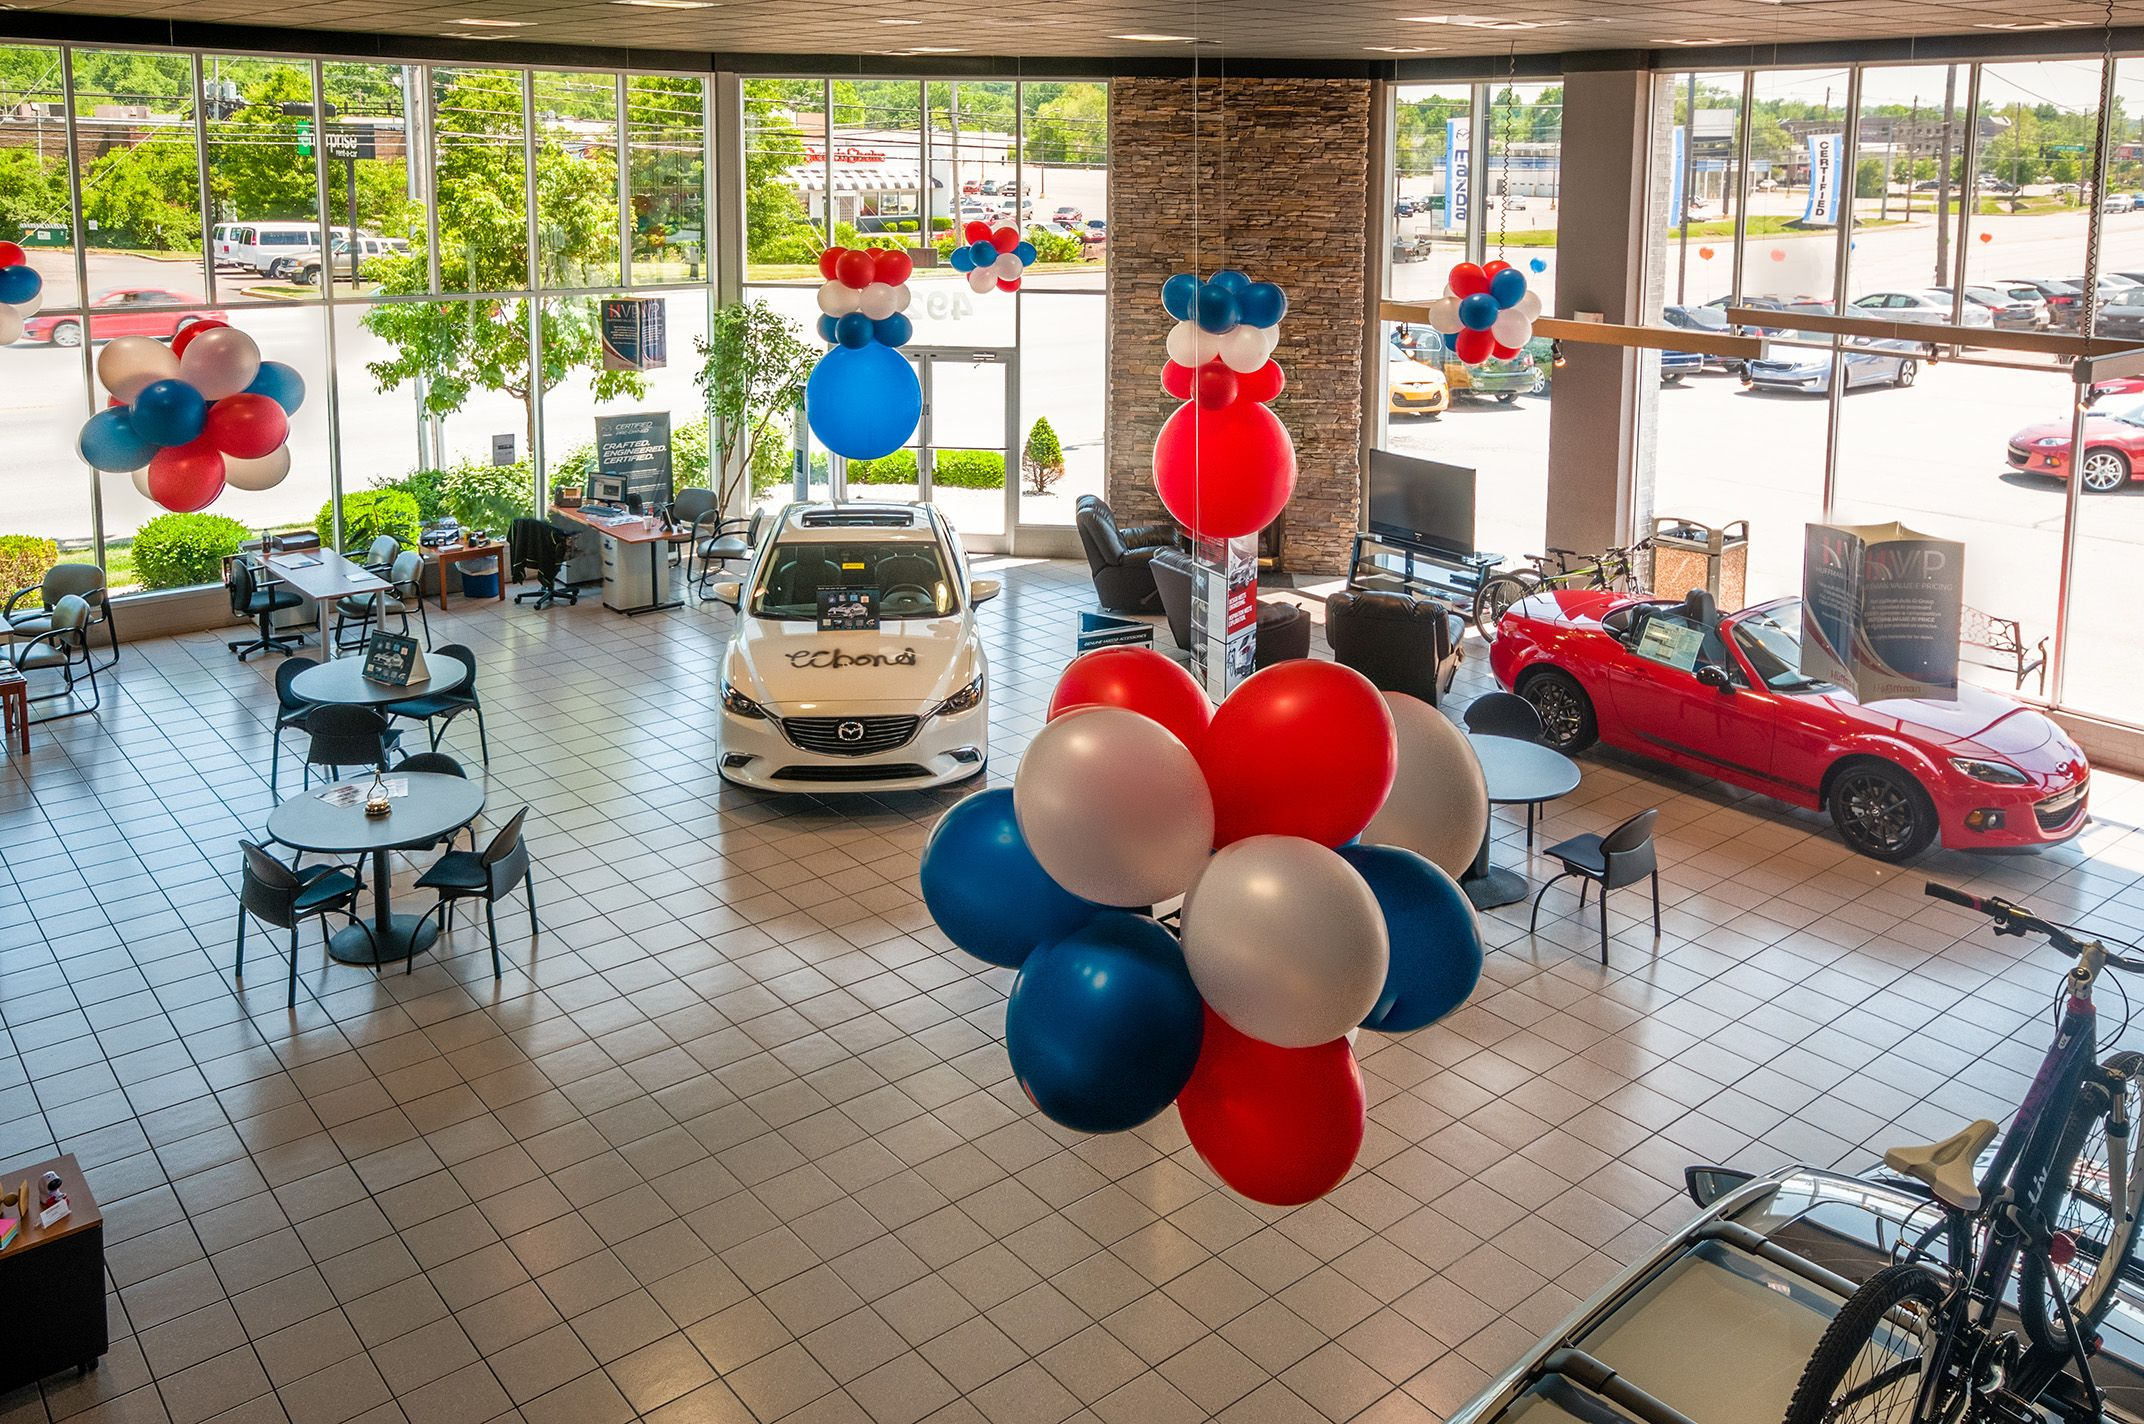 Google Store Tour Till Image Of Mazda Showroom With Images